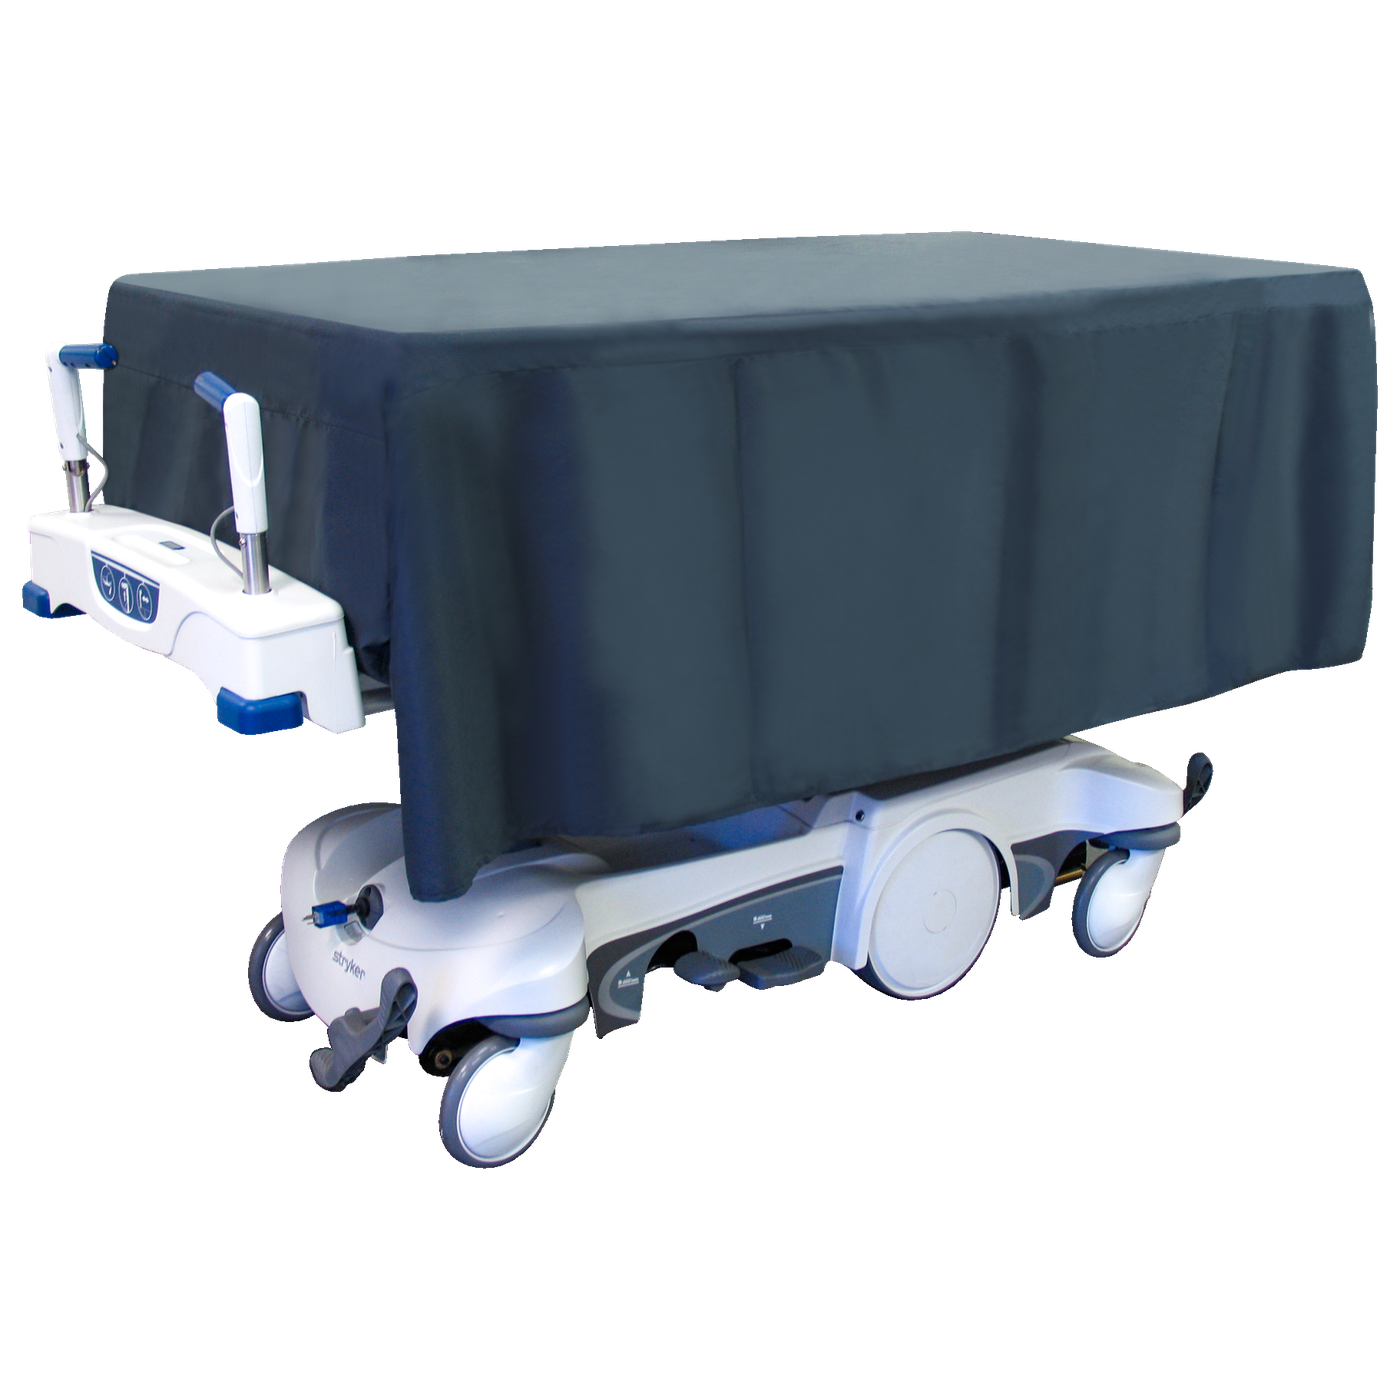 Hydraulic Self Propelled Covered Cadaver Carrier-Body Transporter-Mortech Manufacturing Company Inc. Quality Stainless Steel Autopsy, Morgue, Funeral Home, Necropsy, Veterinary / Anatomy, Dissection Equipment and Accessories